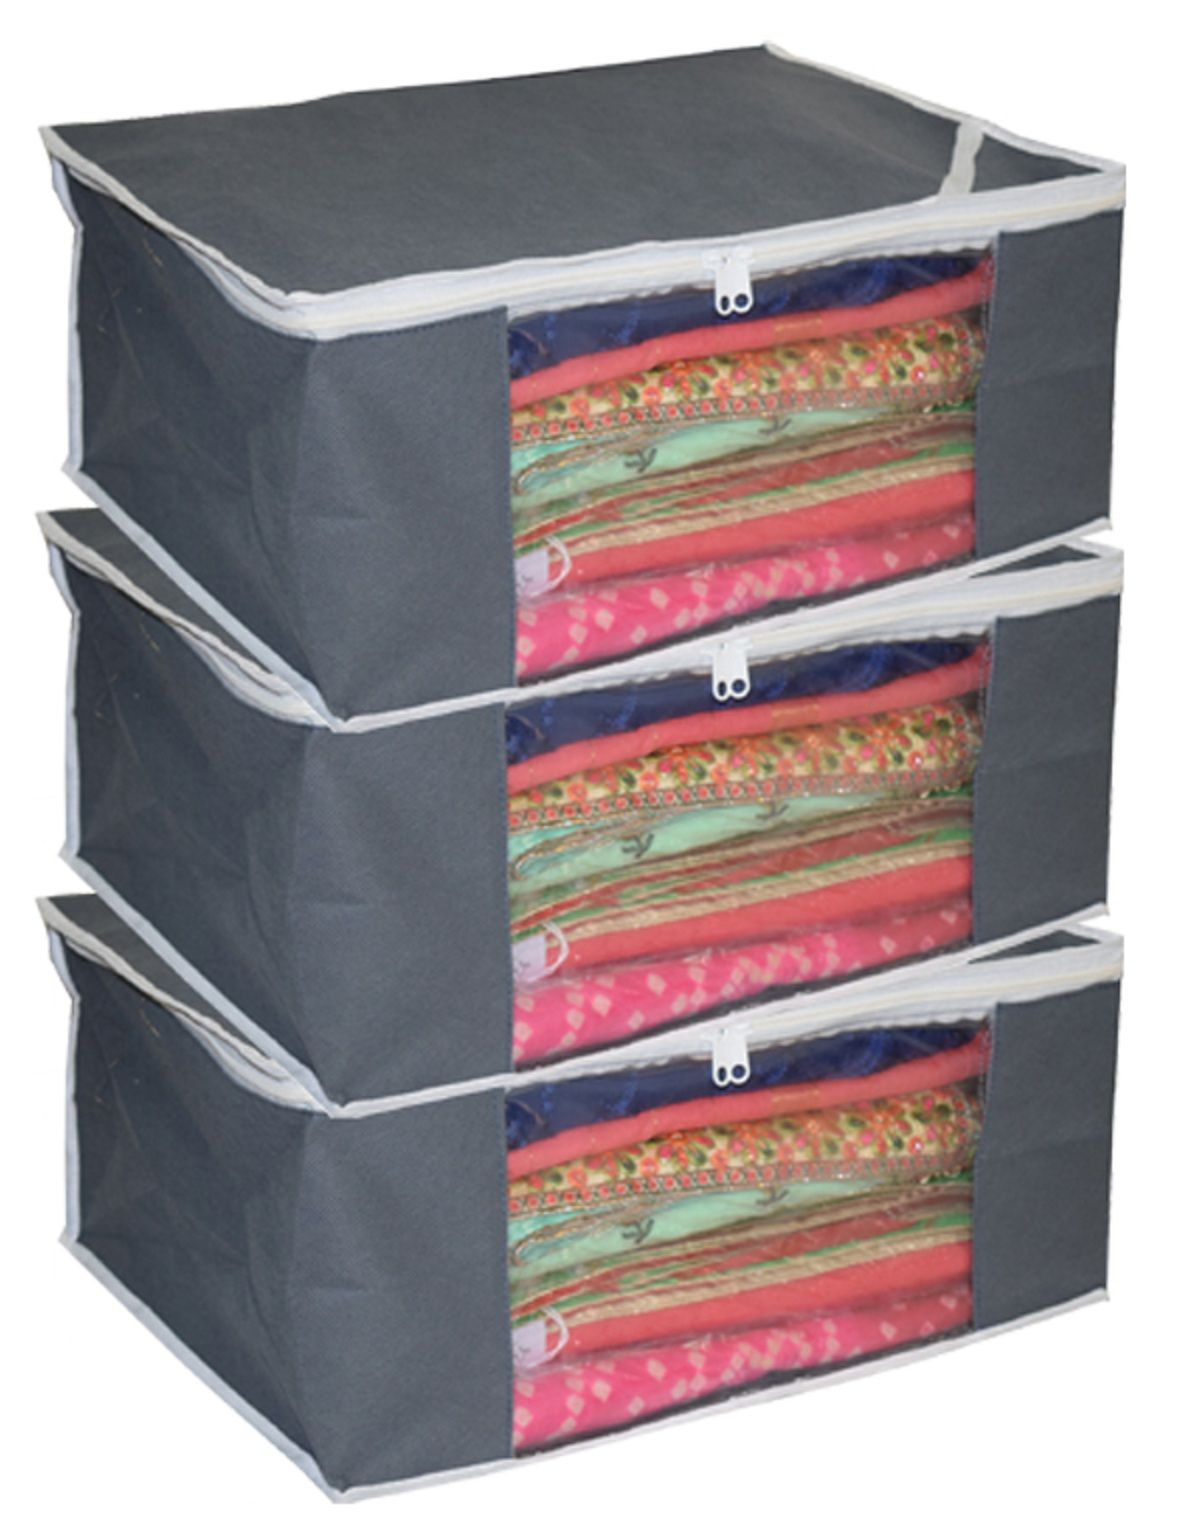 Kuber Industries™ Non Woven Saree Cover/ Saree Bag/ Storage Bag Set Of 3 Pcs (Grey) 9 Inches Height (Code-SCGNW01)